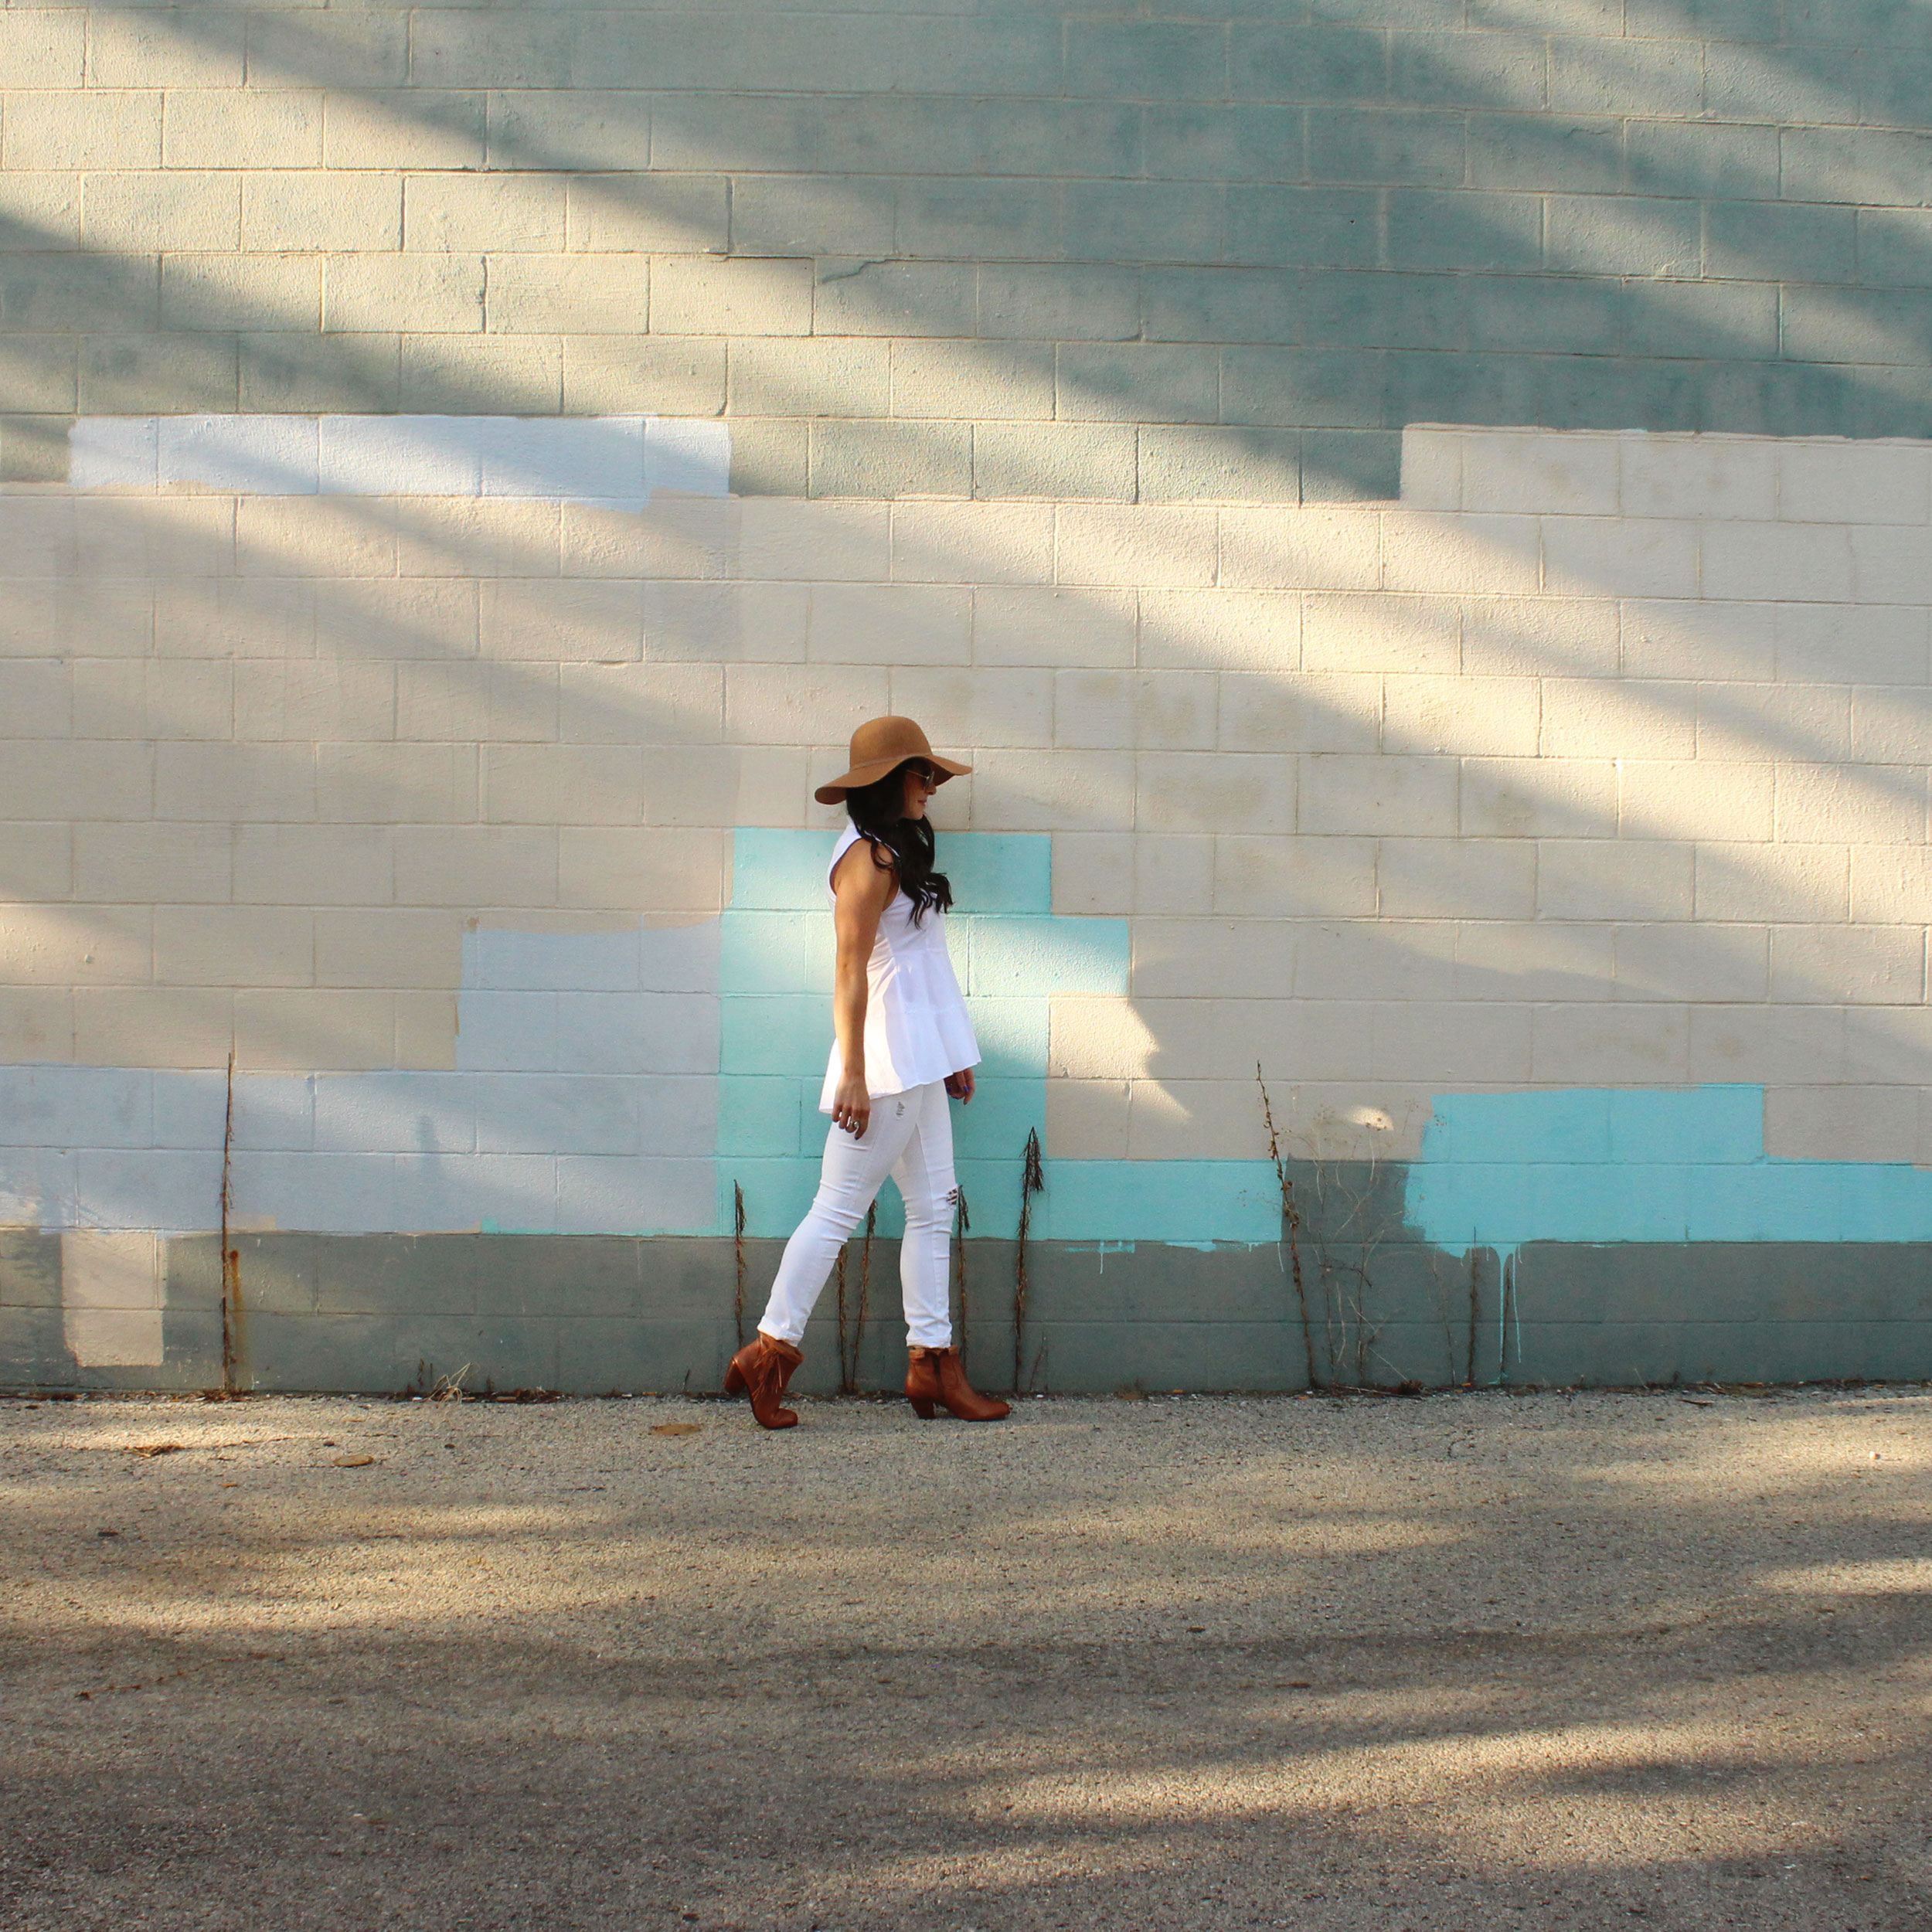 White Denim for Fall, Gap Jeans, J.Crew Denim Jacket, Old Navy Floppy Hat, Sam Edelman Louie Booties, Zara Peplum Top, Sally Hansen Gel Polish in 'Tidal Wave', Seattle Fashion Blogger